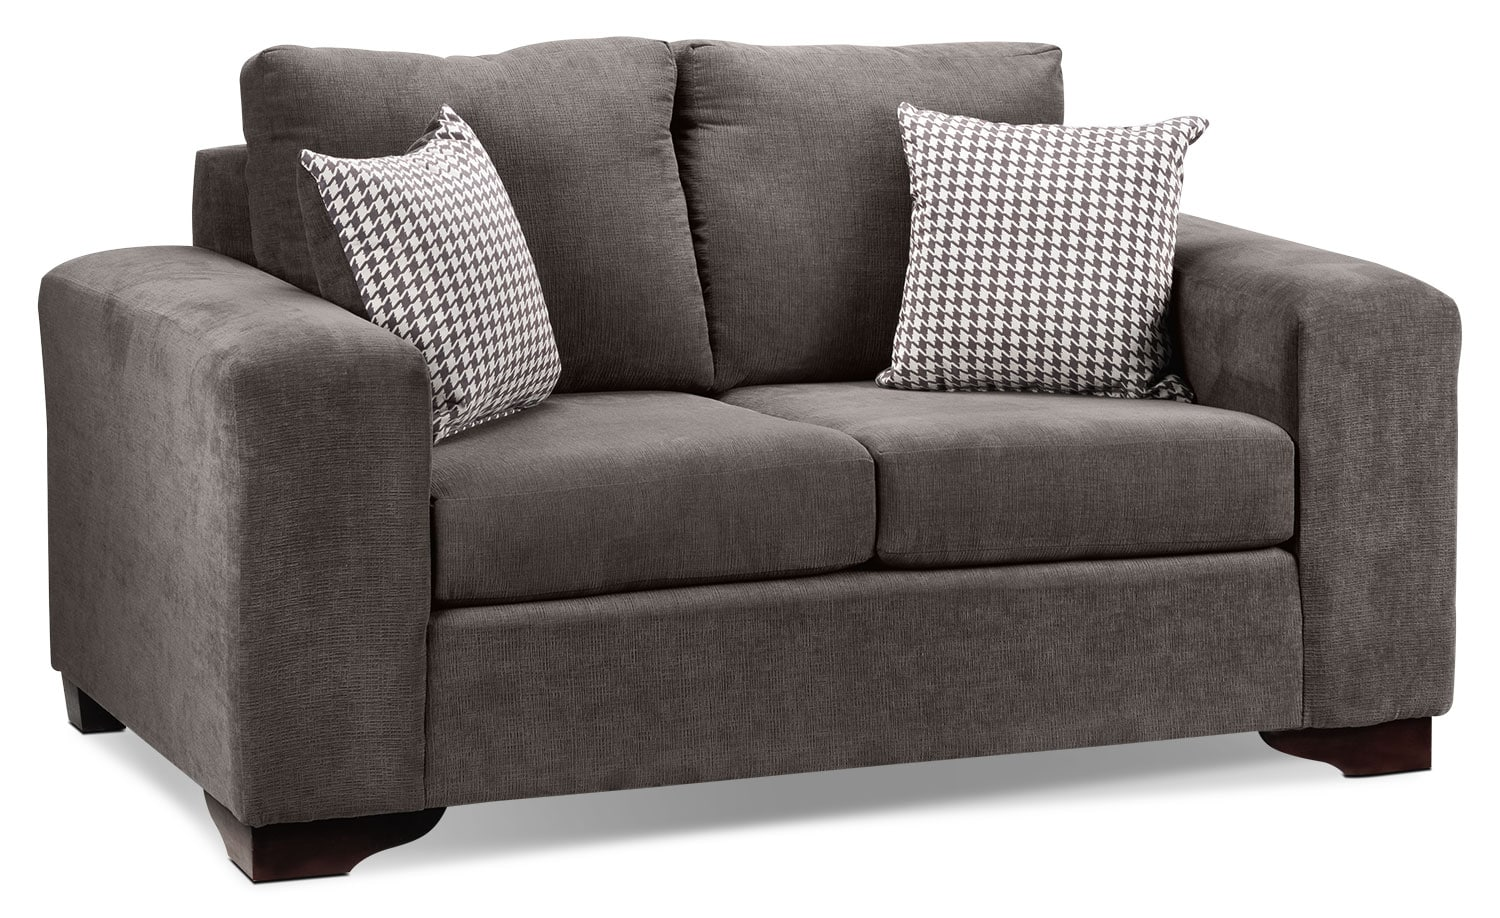 Living Room Furniture - Fava Loveseat - Grey